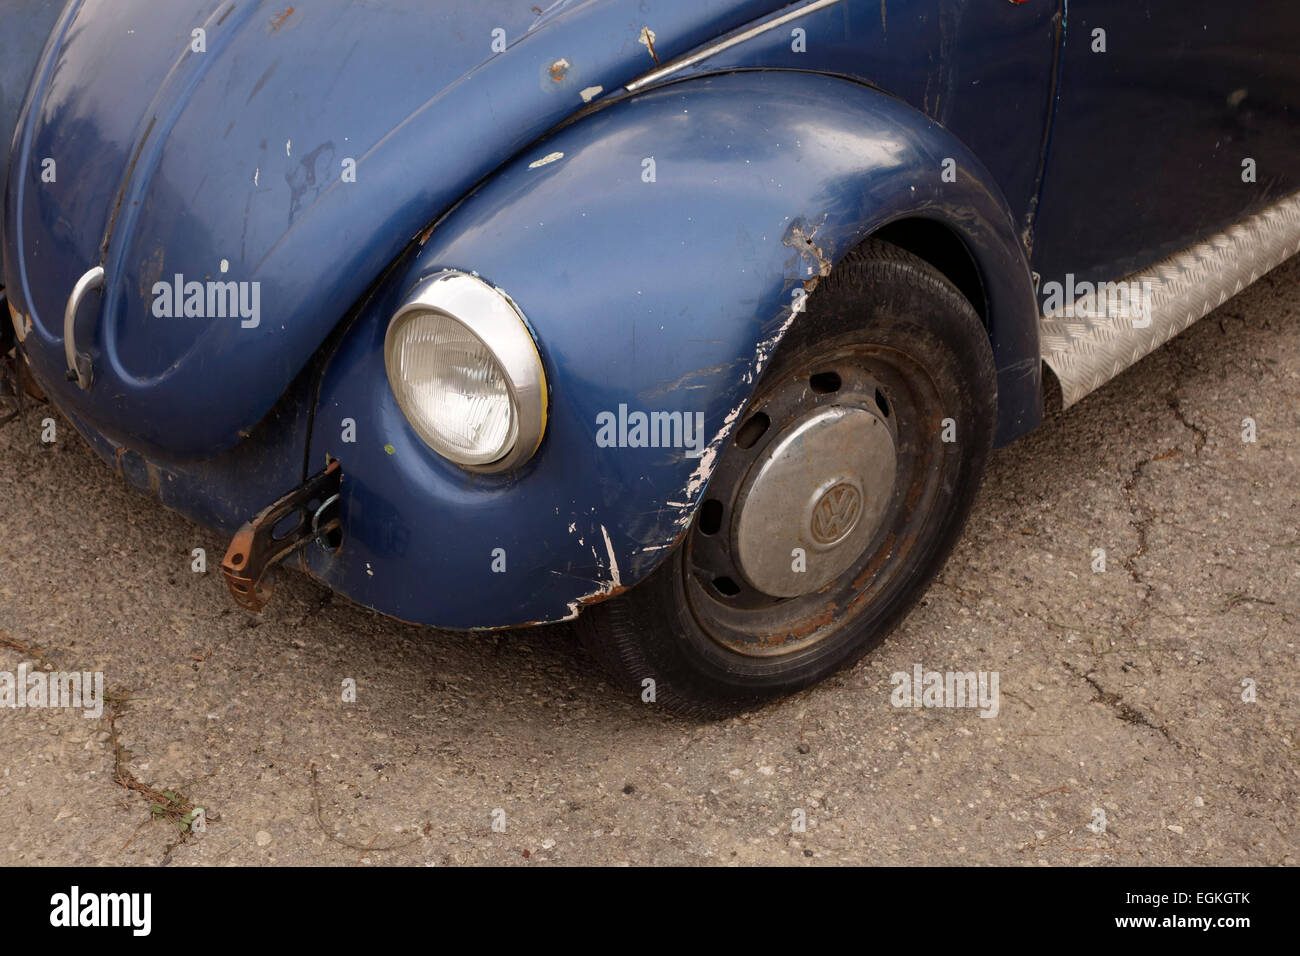 An old Volkswagen car - Stock Image